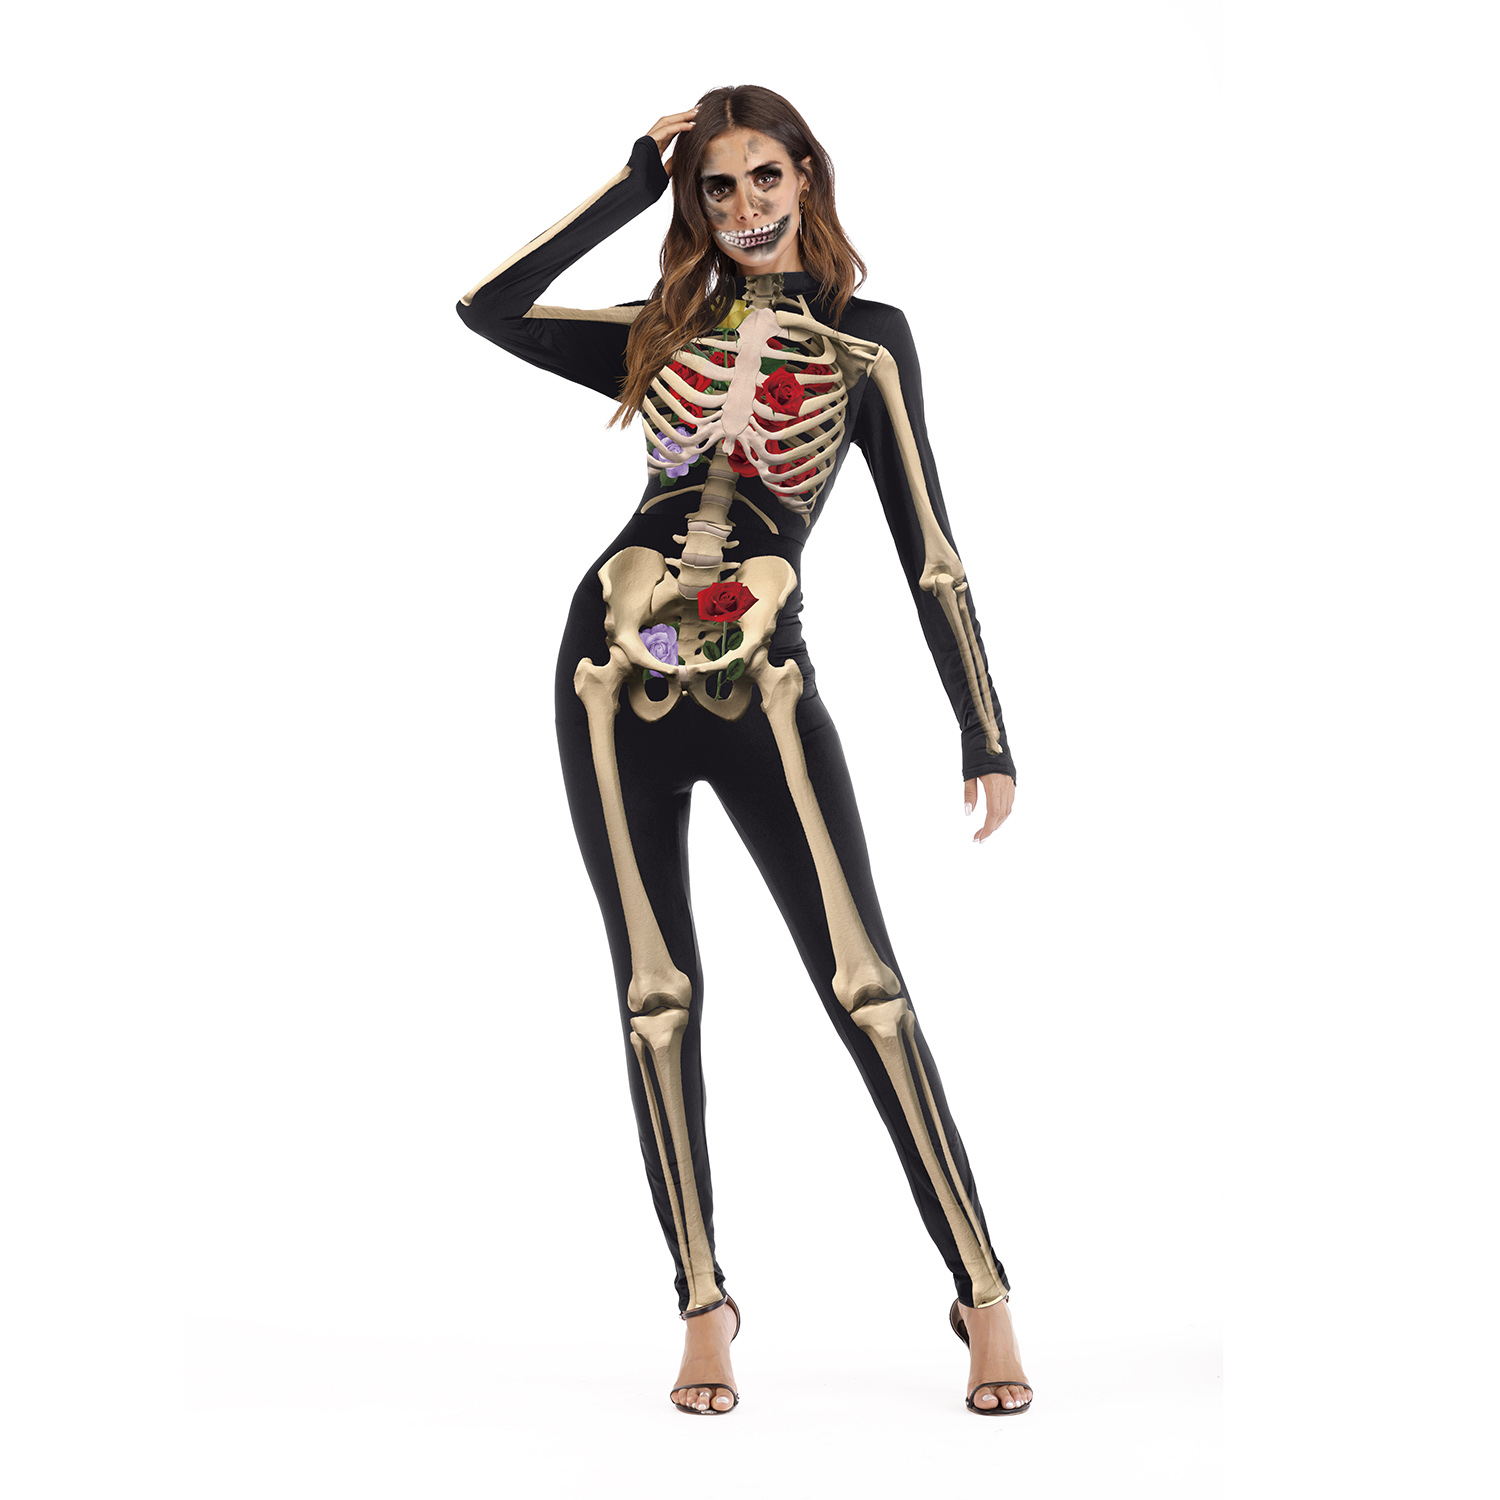 2018 hot halloween costume party performance tight jumpsuits cosplay costume